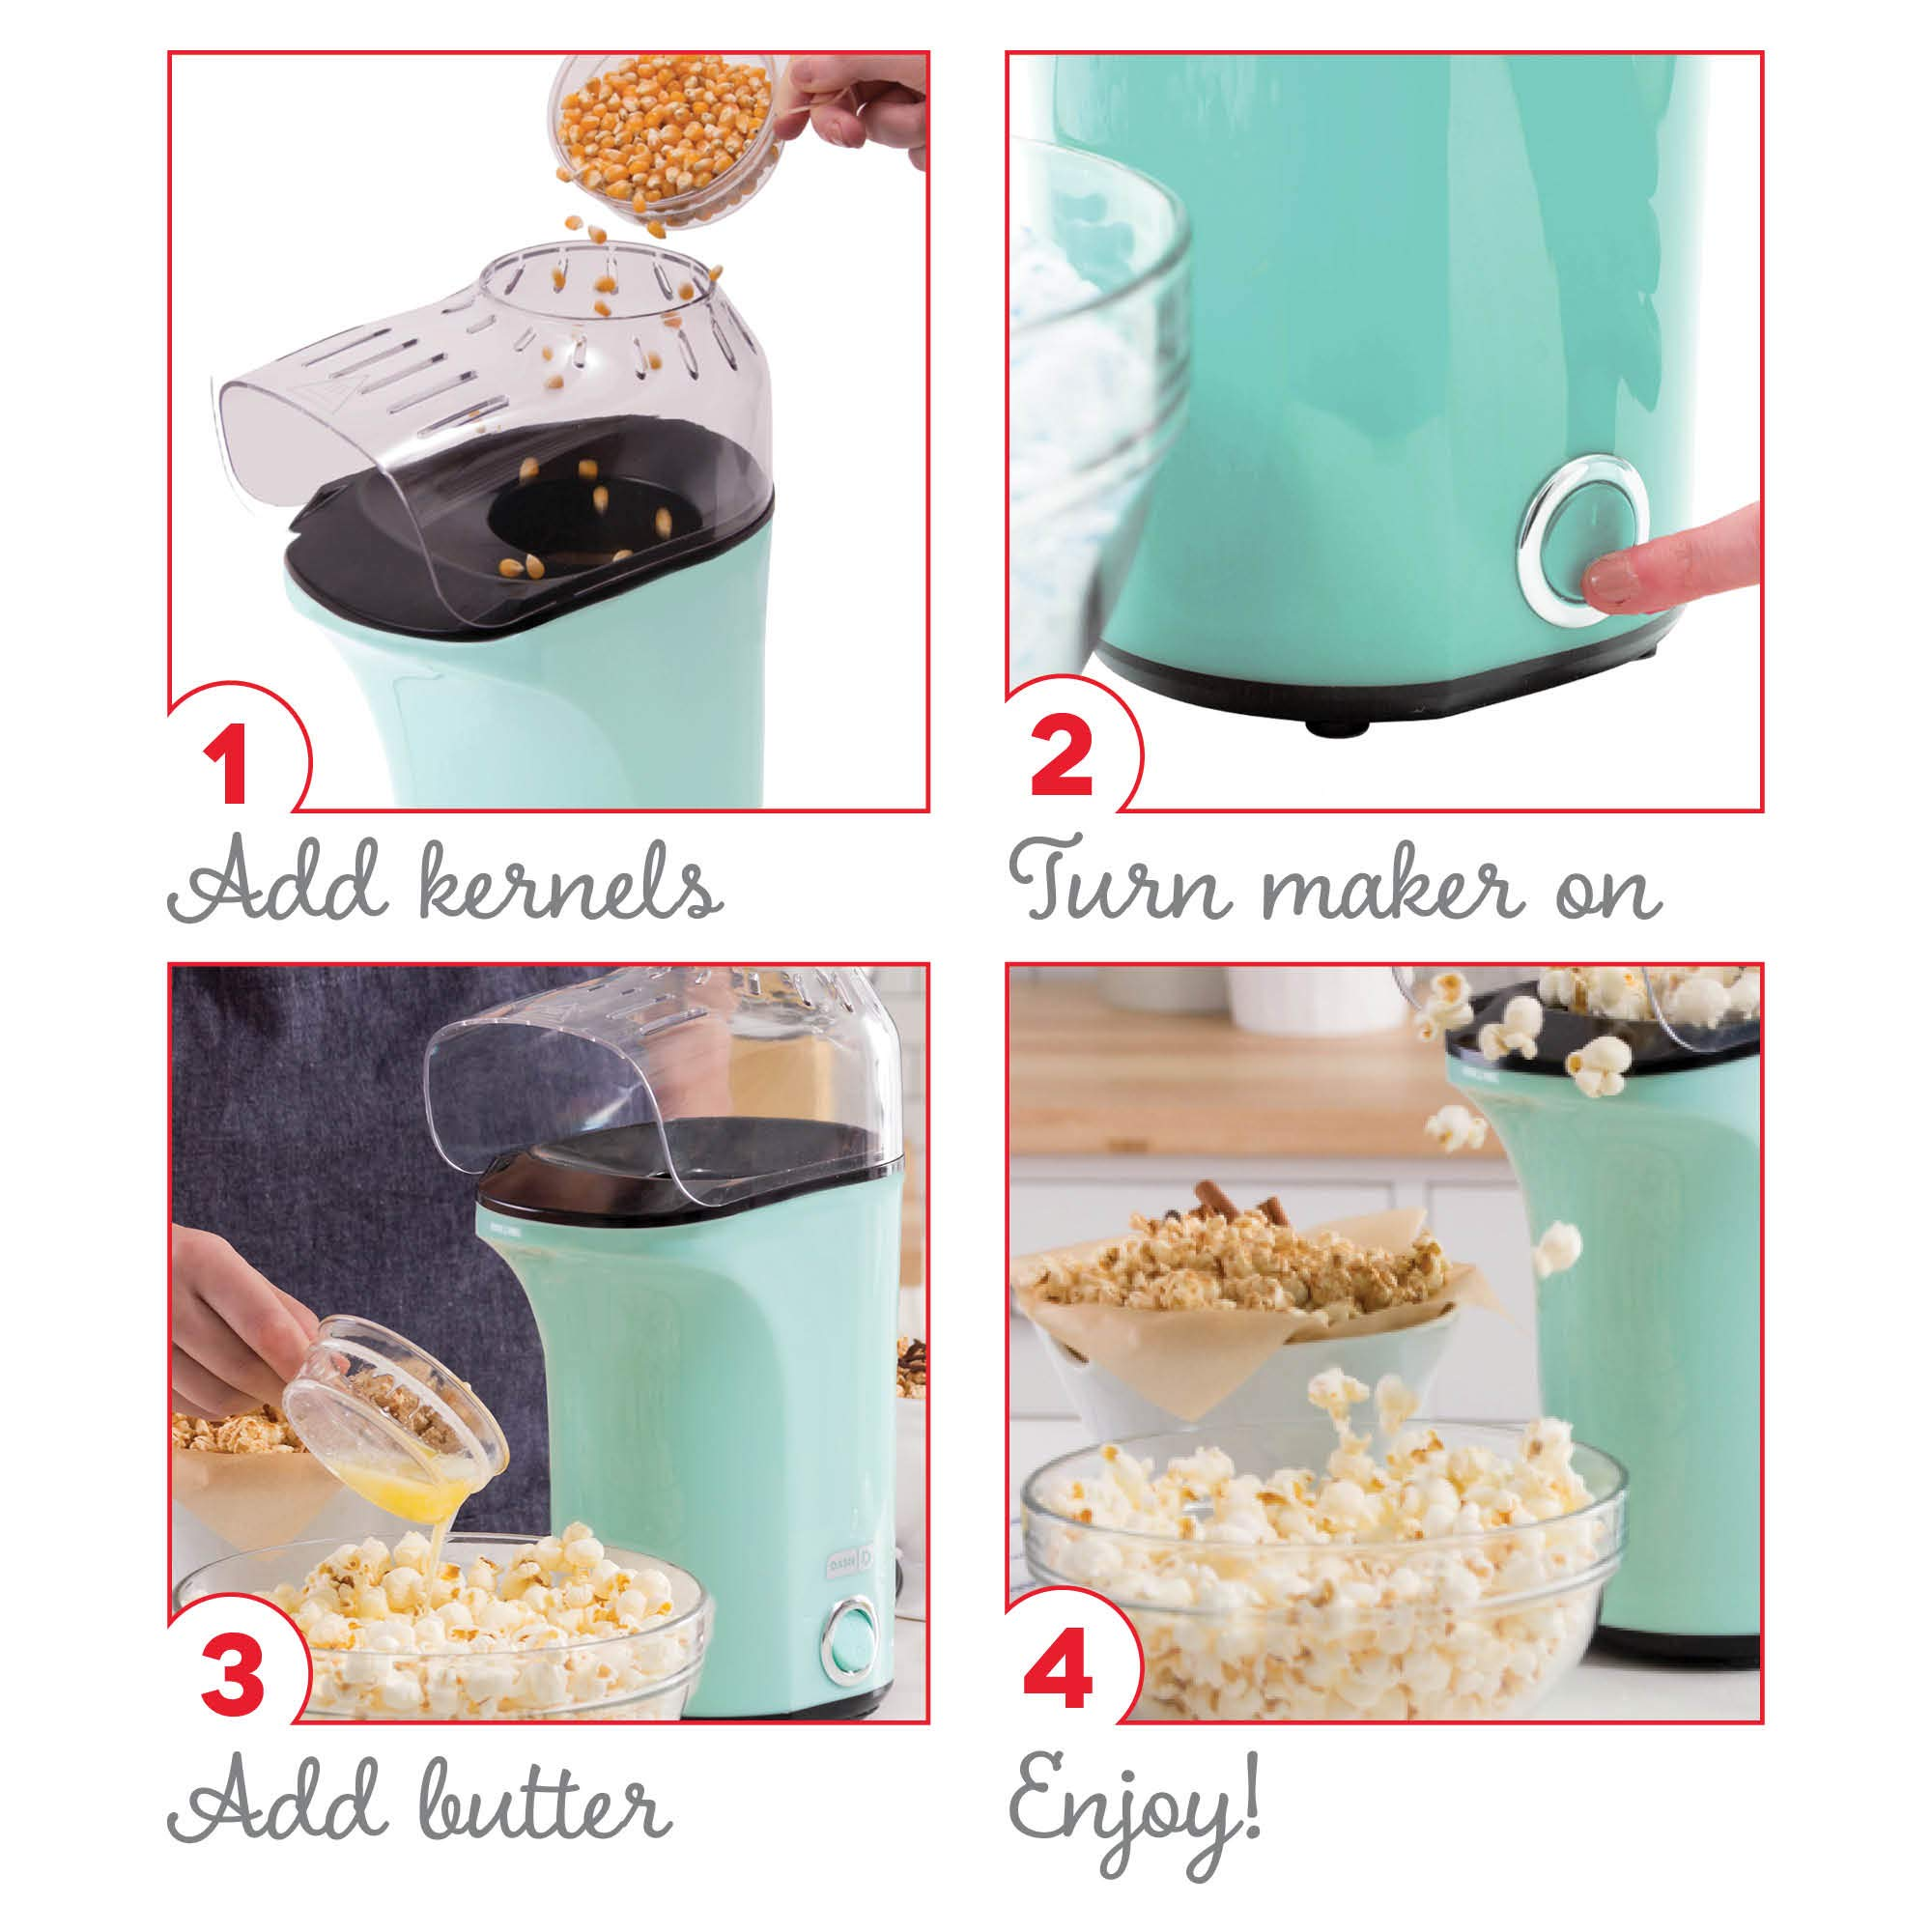 Dash DAPP150V2AQ04 Hot Air Popcorn Popper Maker with with Measuring Cup to Portion Popping Corn Kernels + Melt Butter, Makes 16C, Aqua by DASH (Image #4)